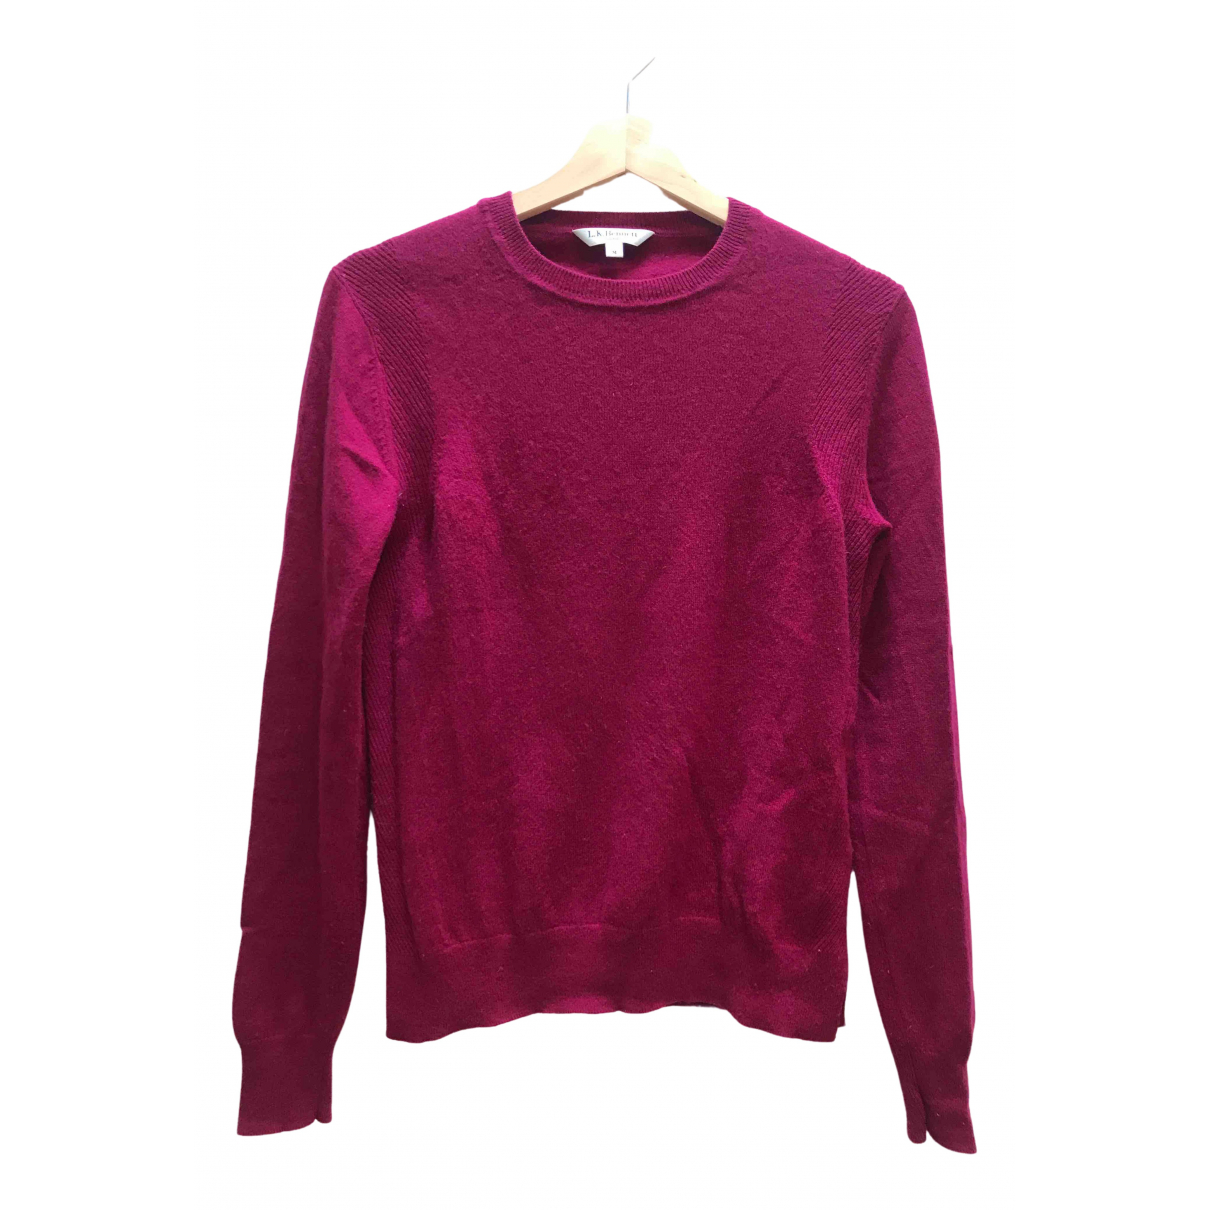 Lk Bennett \N Purple Wool Knitwear for Women M International